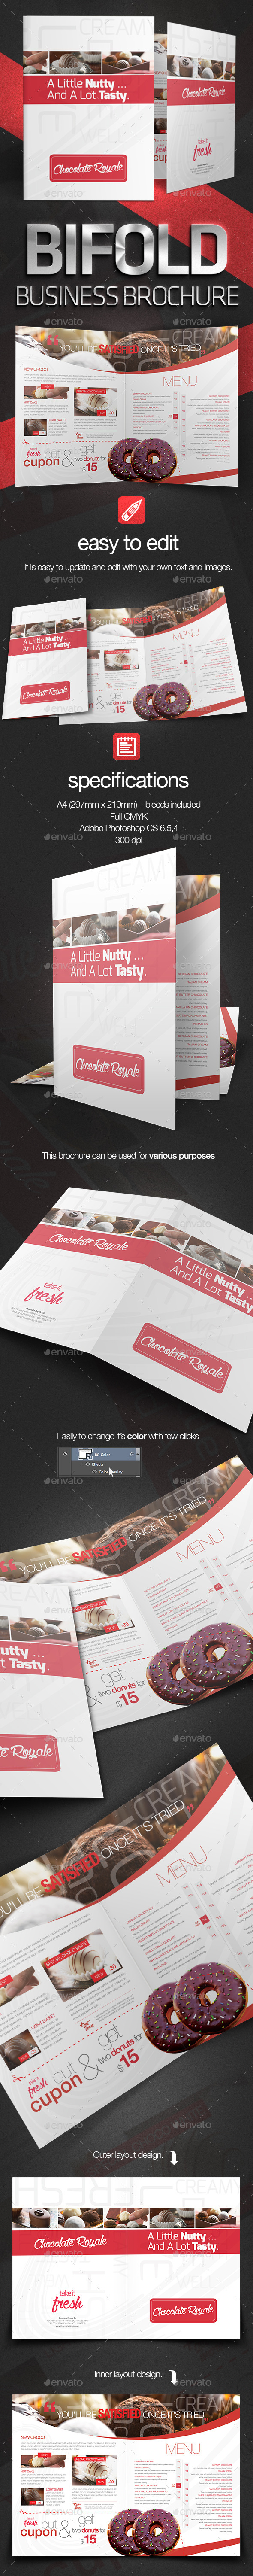 GraphicRiver Bifold Business Brochure 8894721